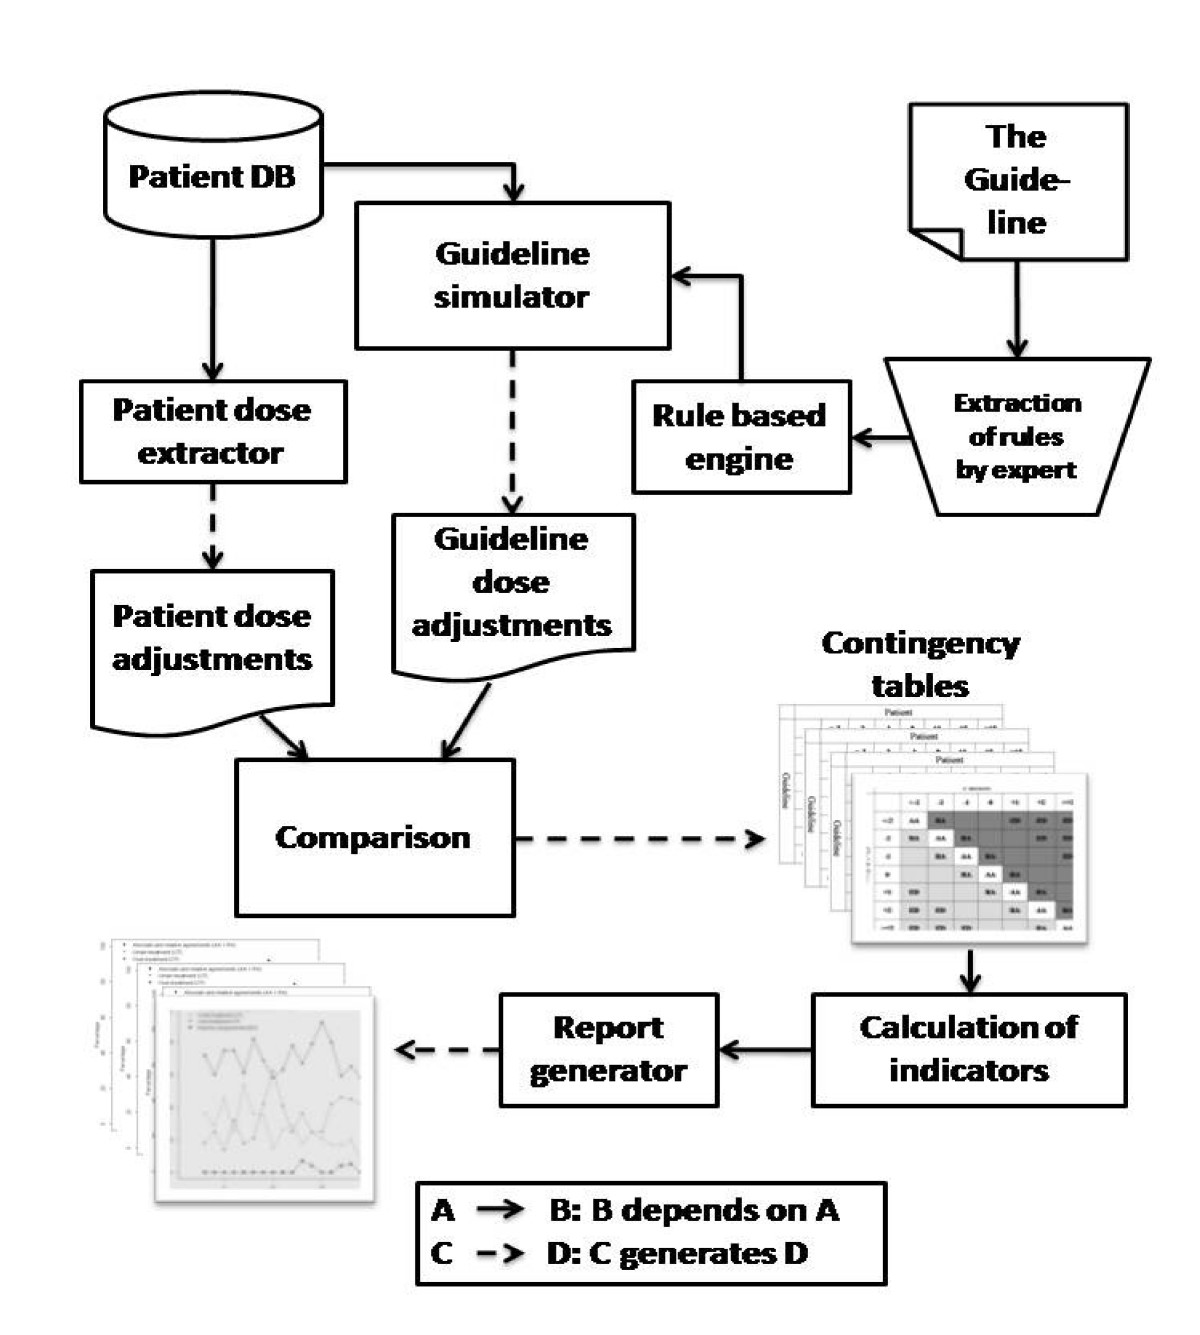 https://static-content.springer.com/image/art%3A10.1186%2F1472-6947-8-55/MediaObjects/12911_2008_Article_227_Fig1_HTML.jpg